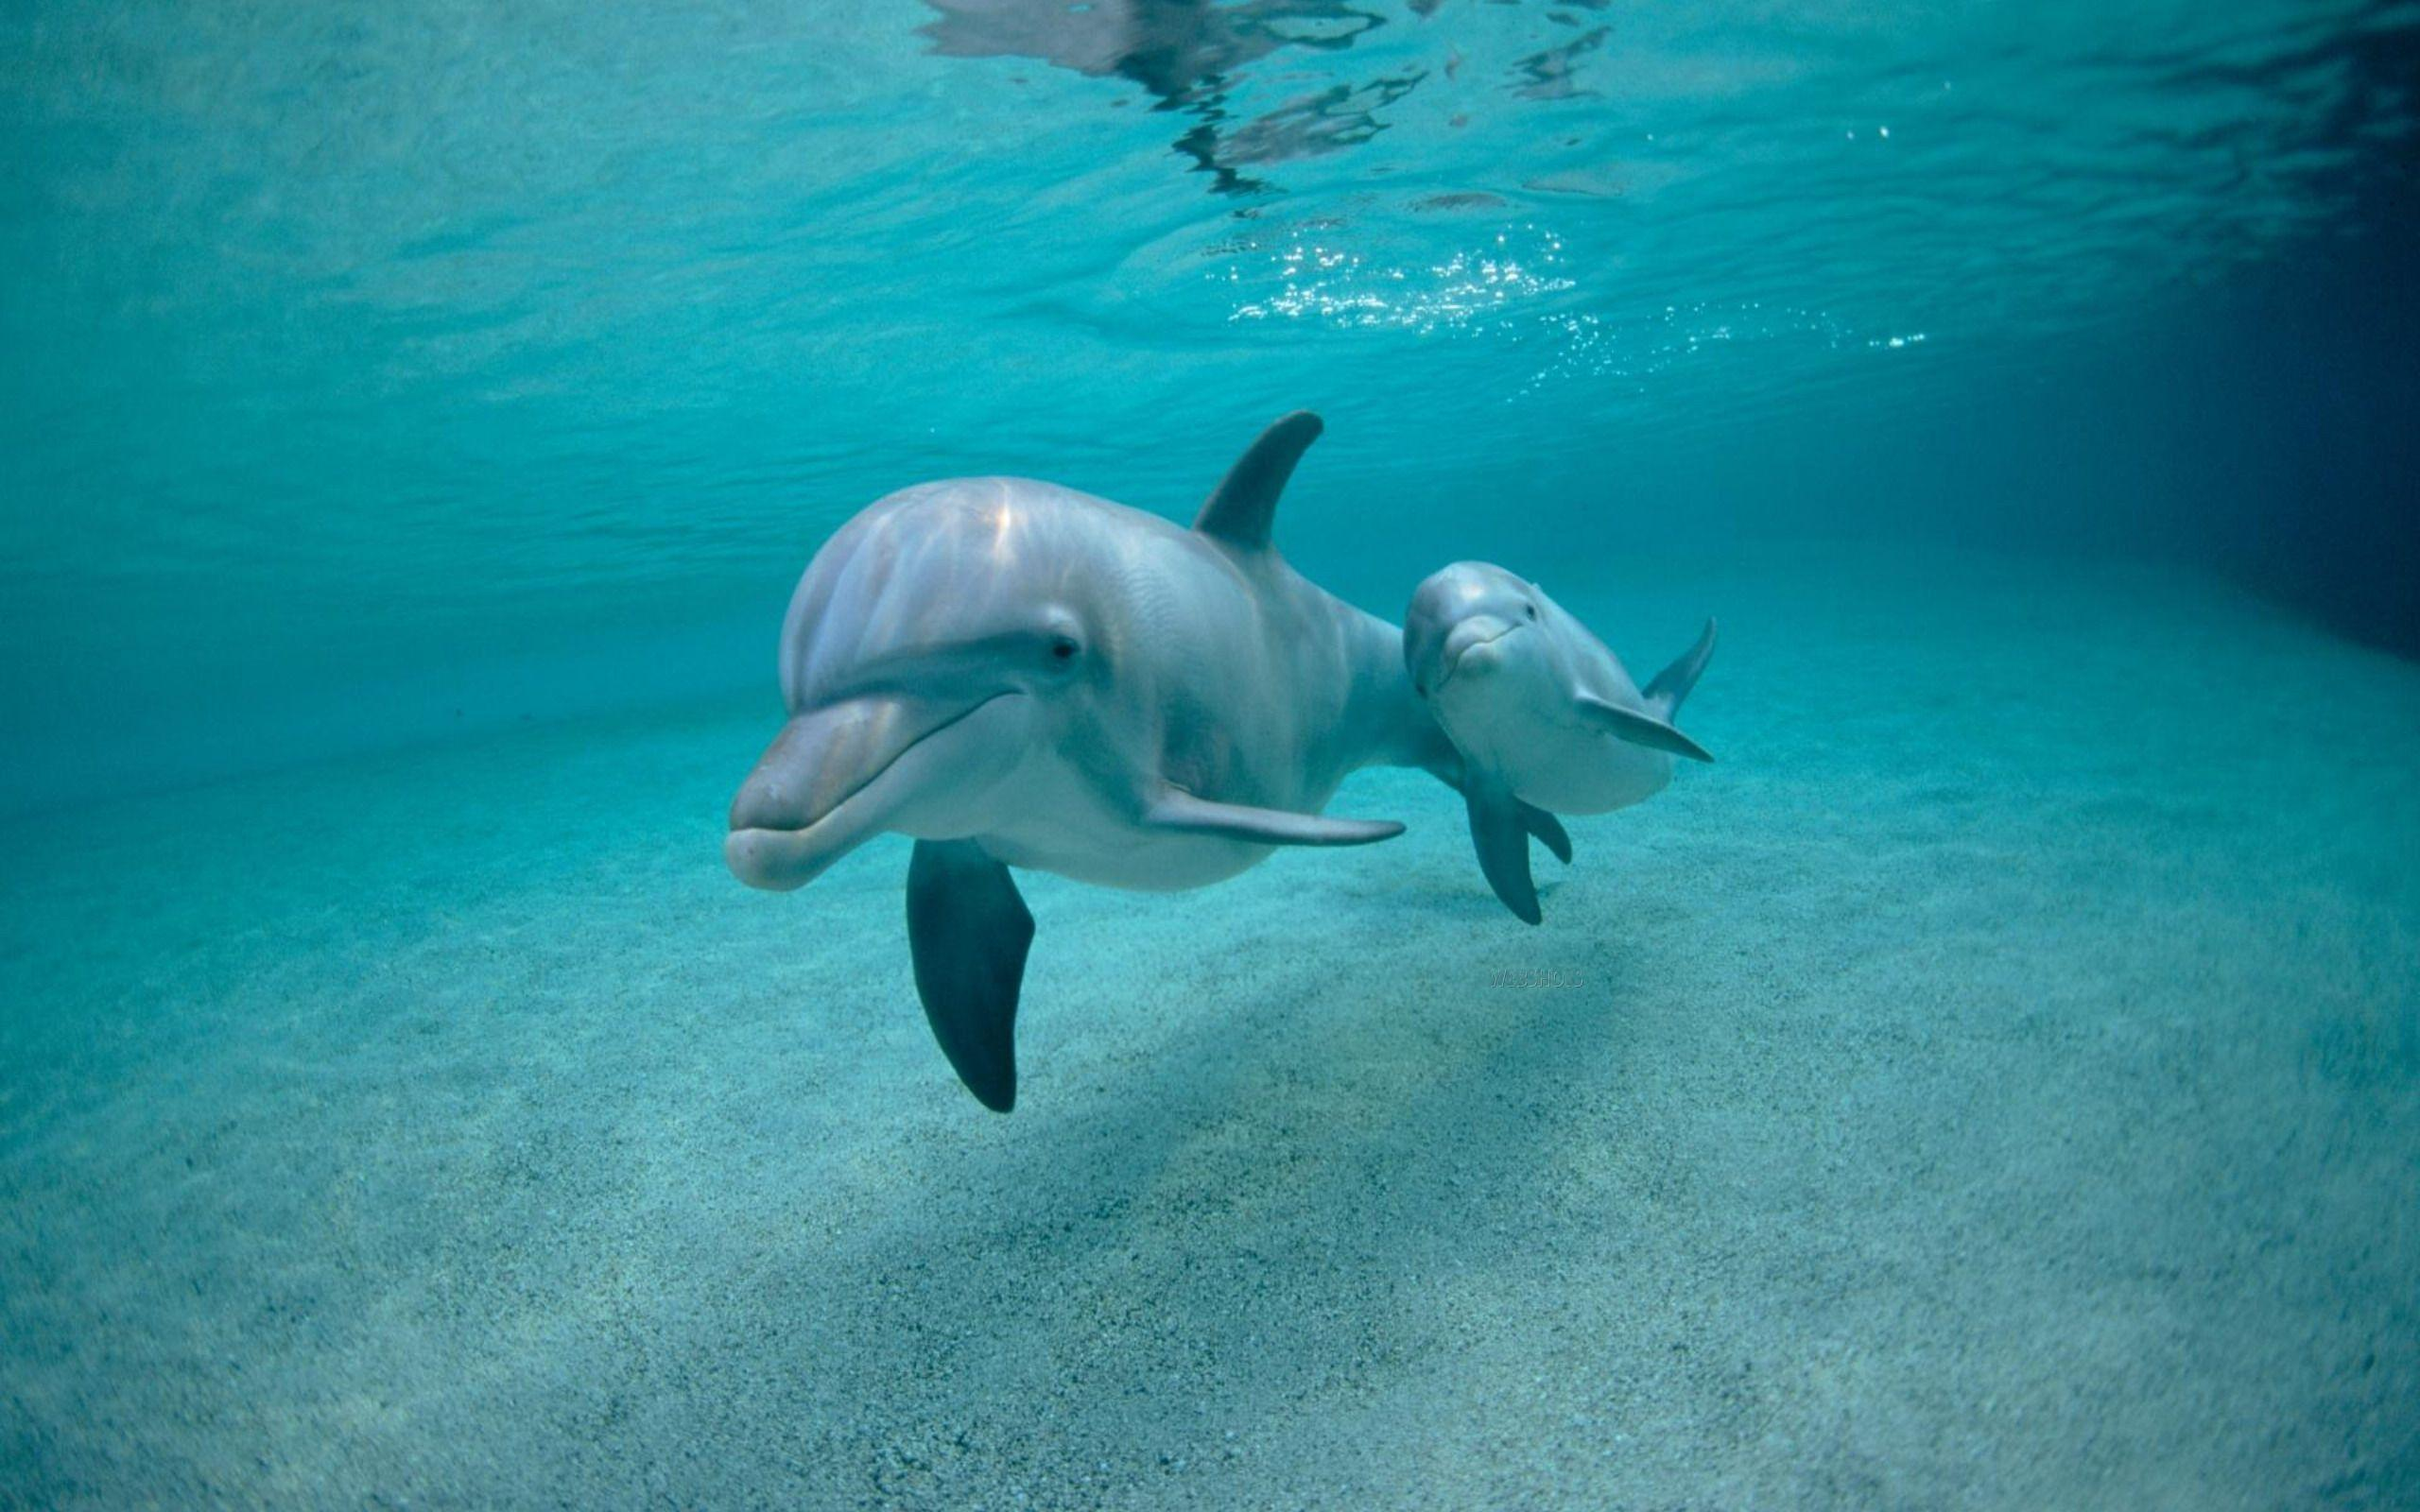 Dolphin Wallpapers - Full HD wallpaper search - page 2